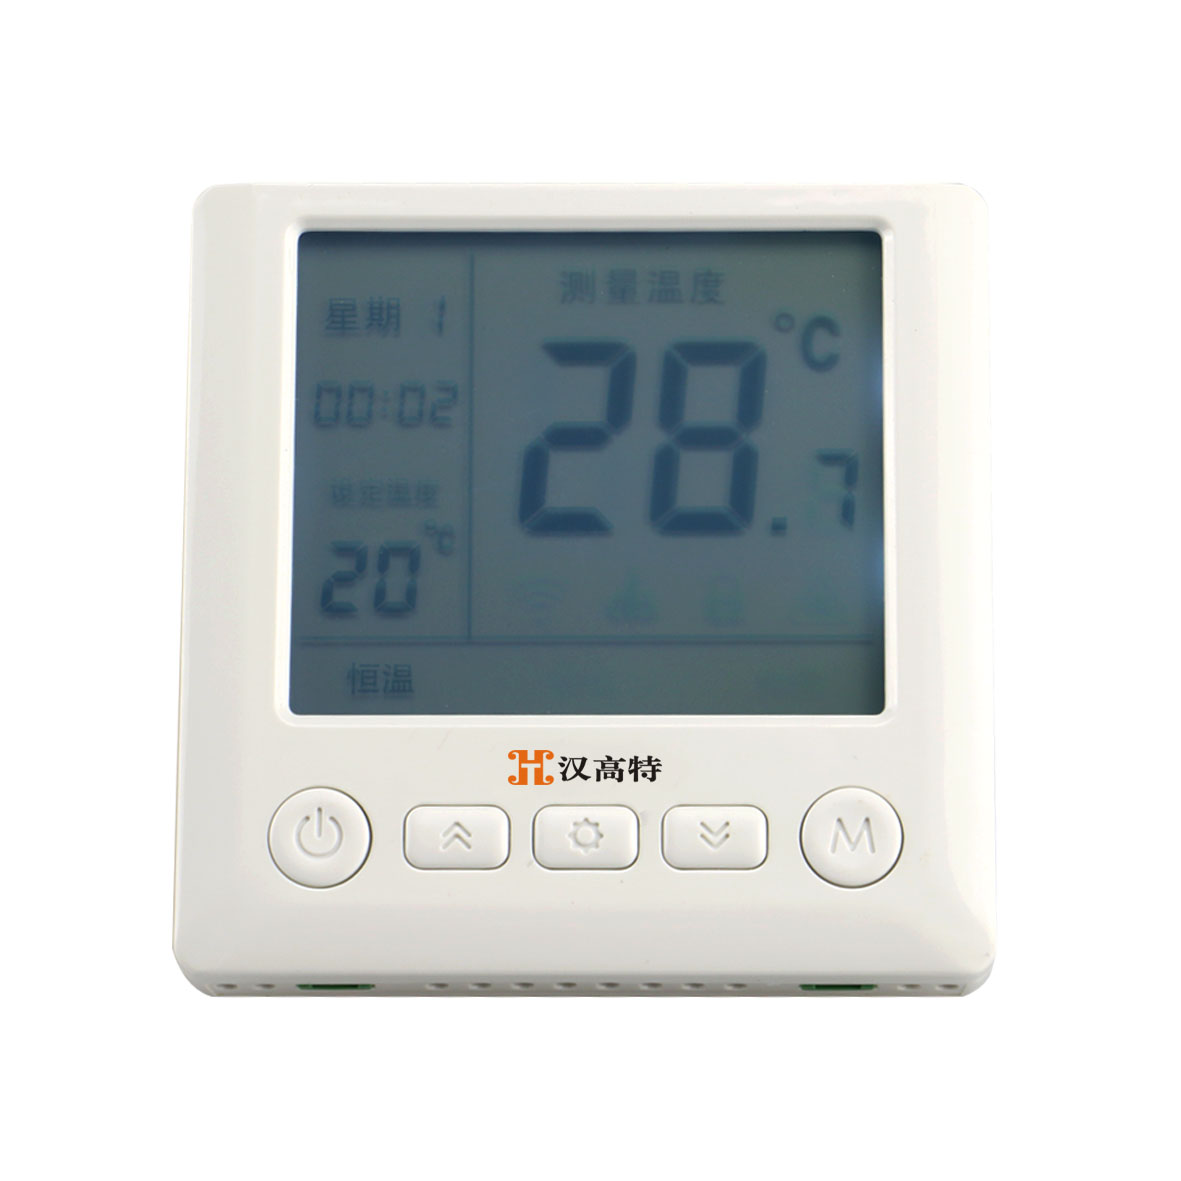 LCD intelligent thermostat